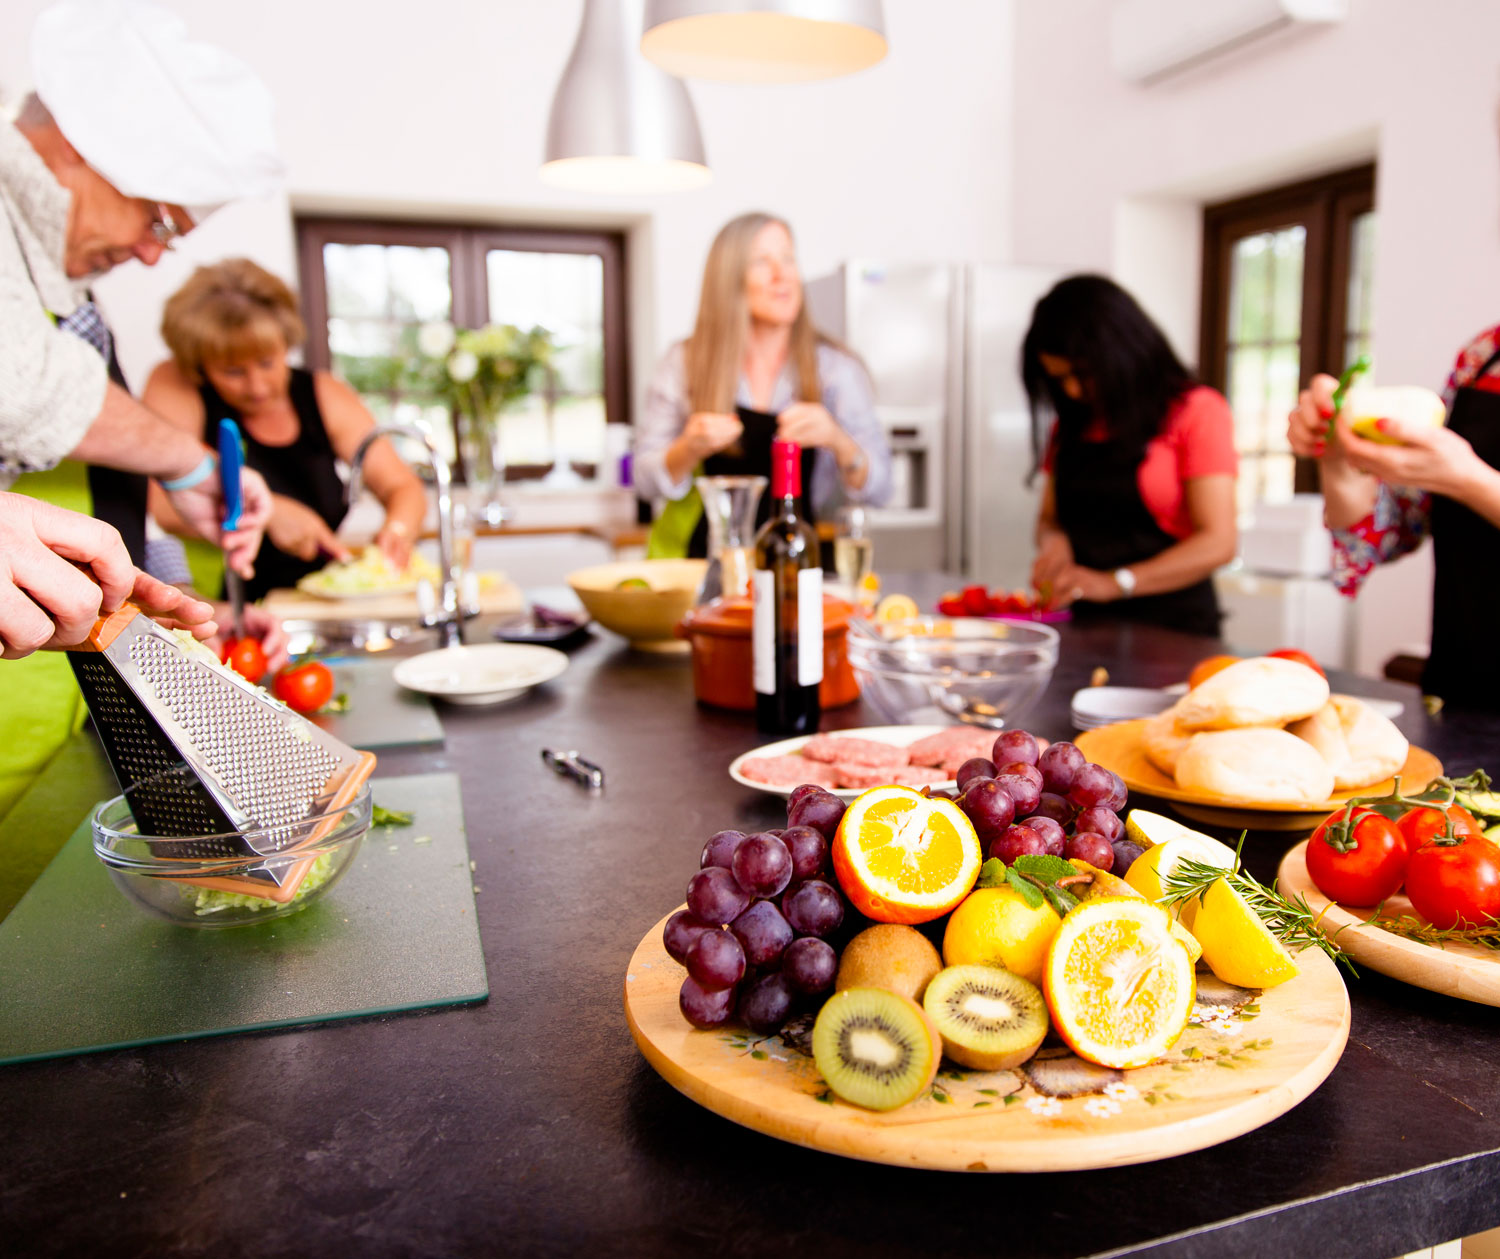 healthy eating cooking class at retreat in Portugal